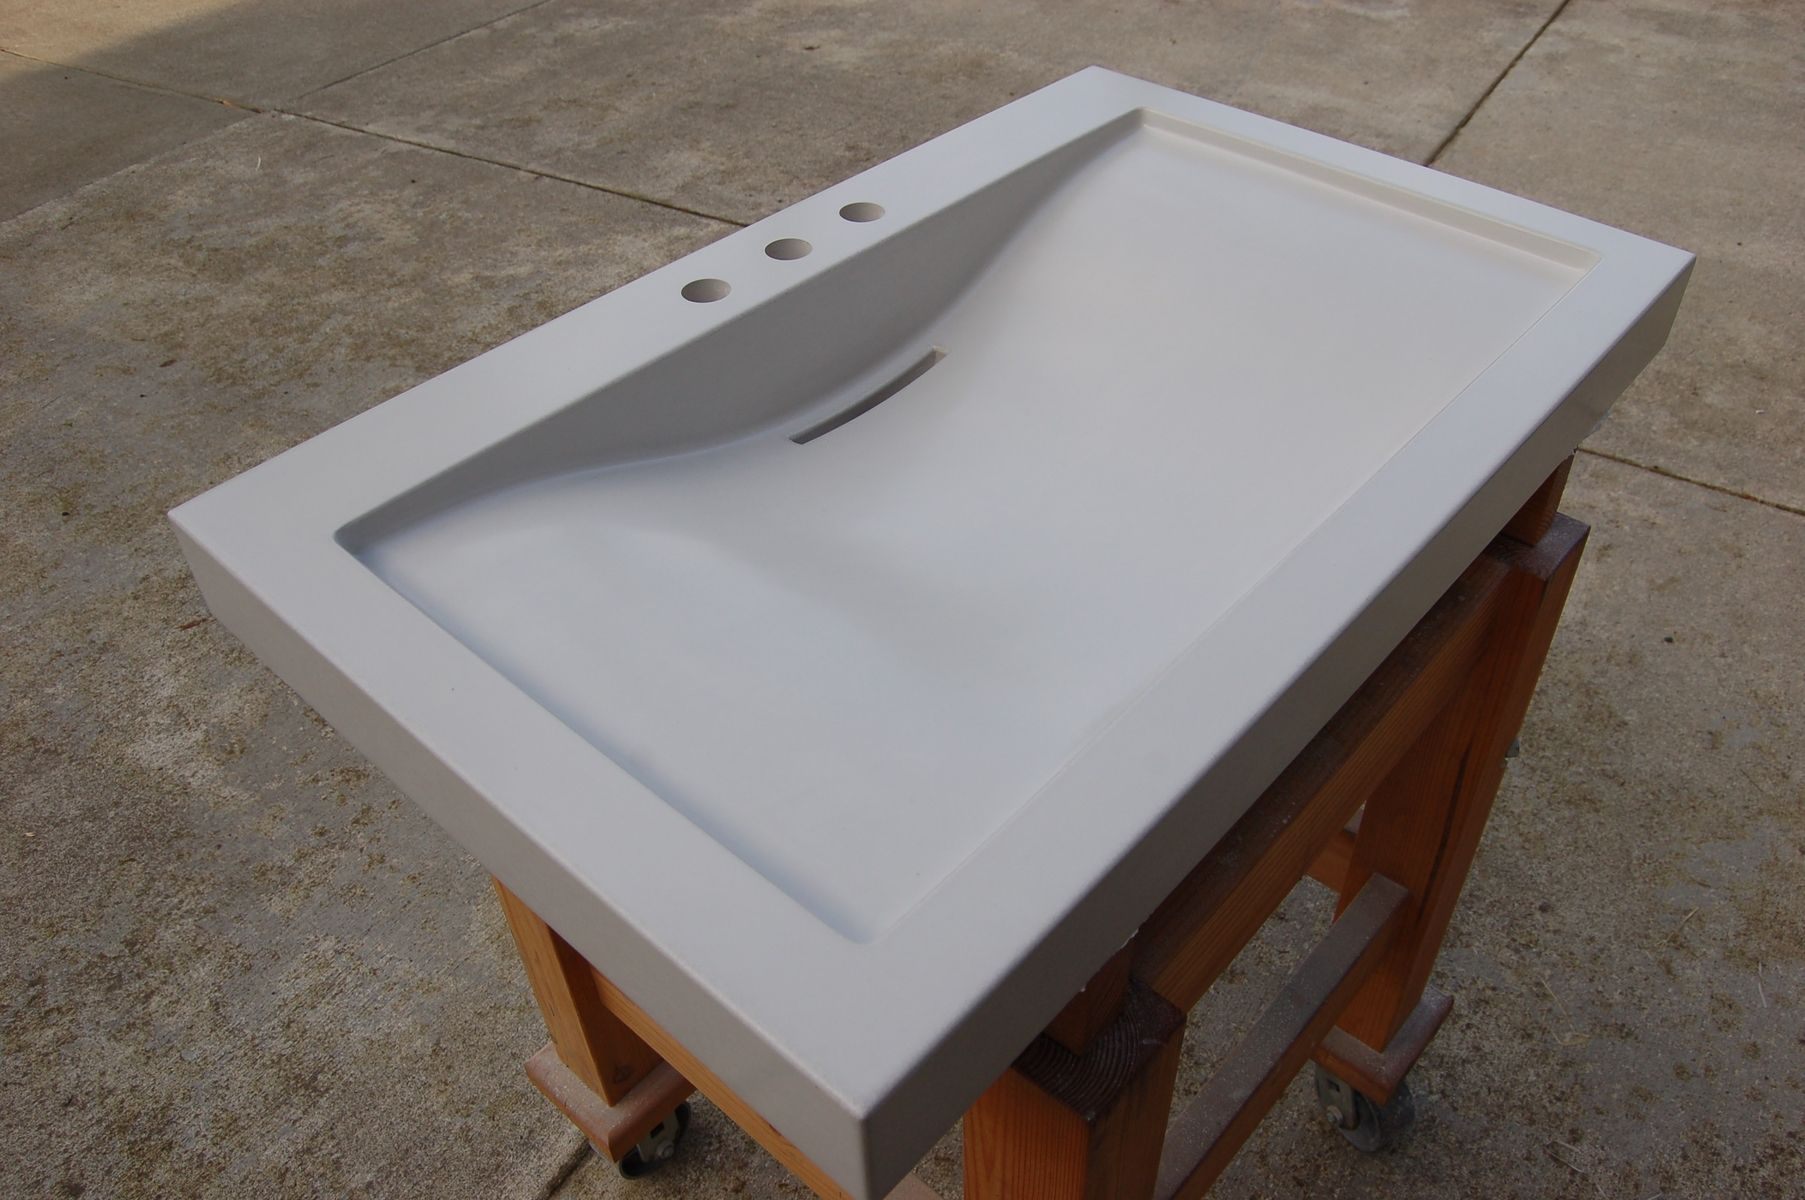 Handmade Balboa Concrete Sink By Agitated Aggregate